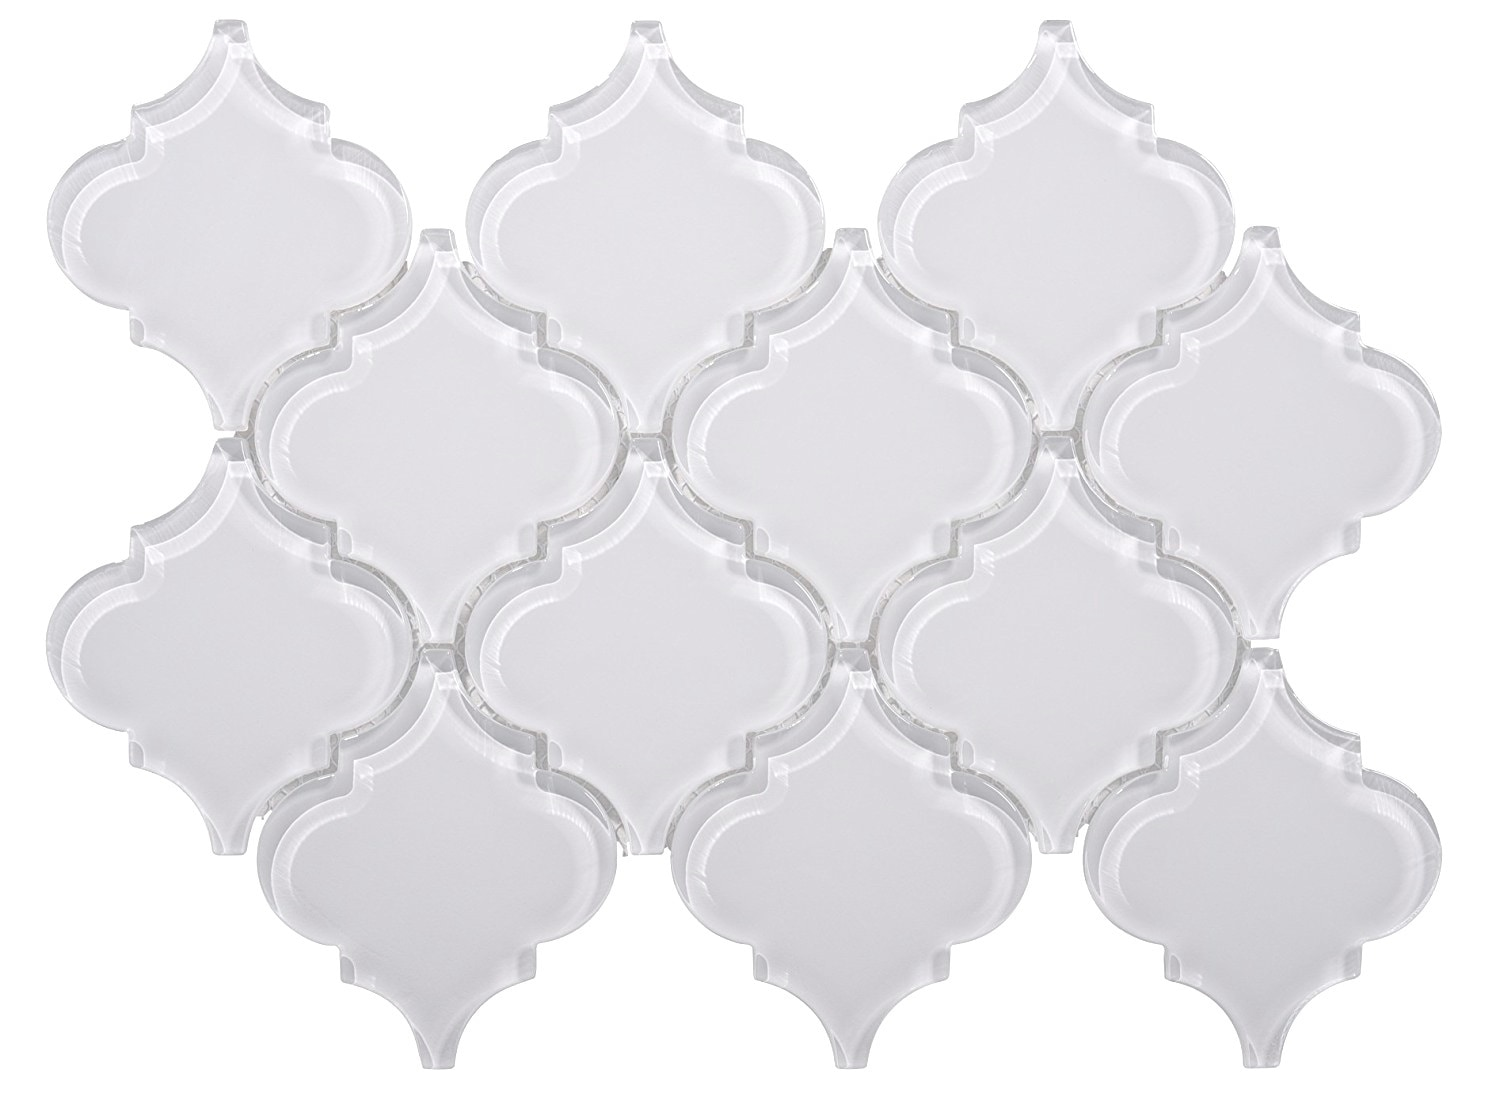 Glass Mosaic / 12 x 12 x 0.31 inches / Glossy Lantern Glass Mosaic Tile In White 0